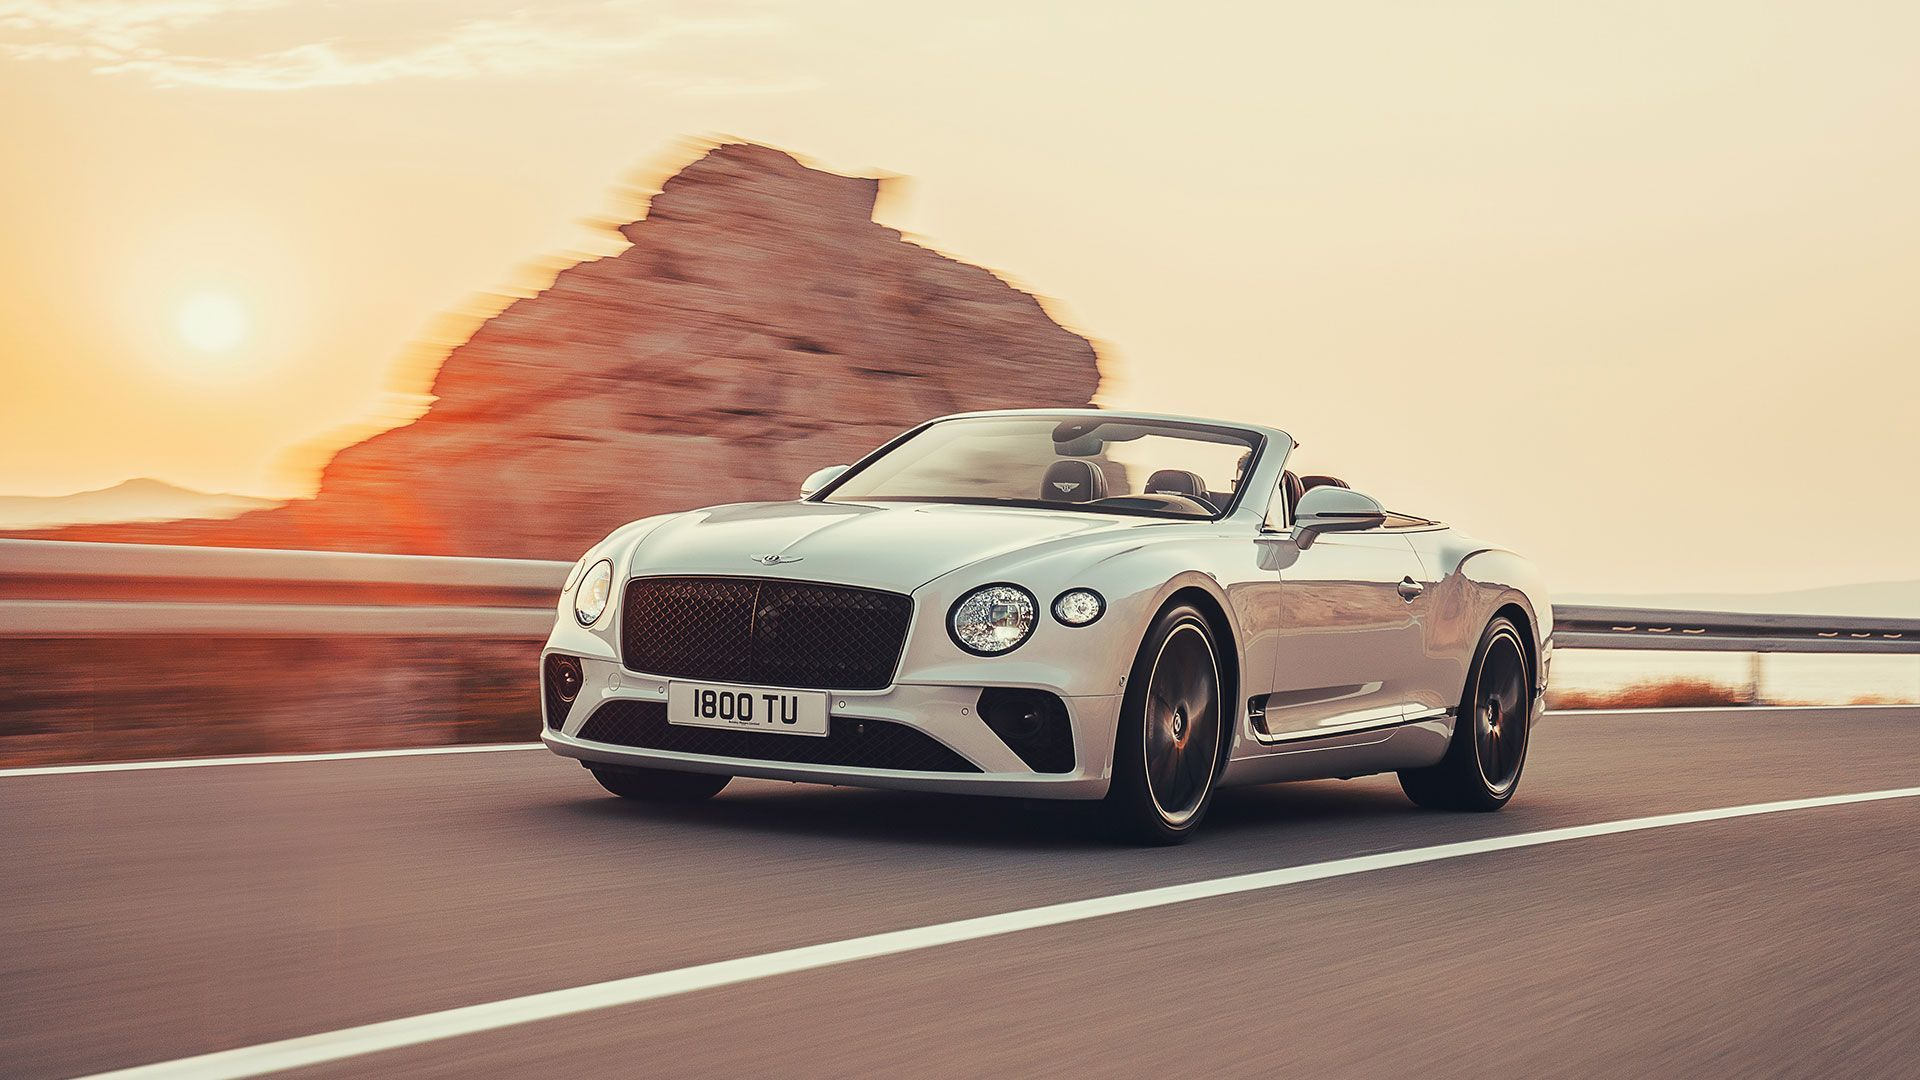 Bentley Continental GTC image